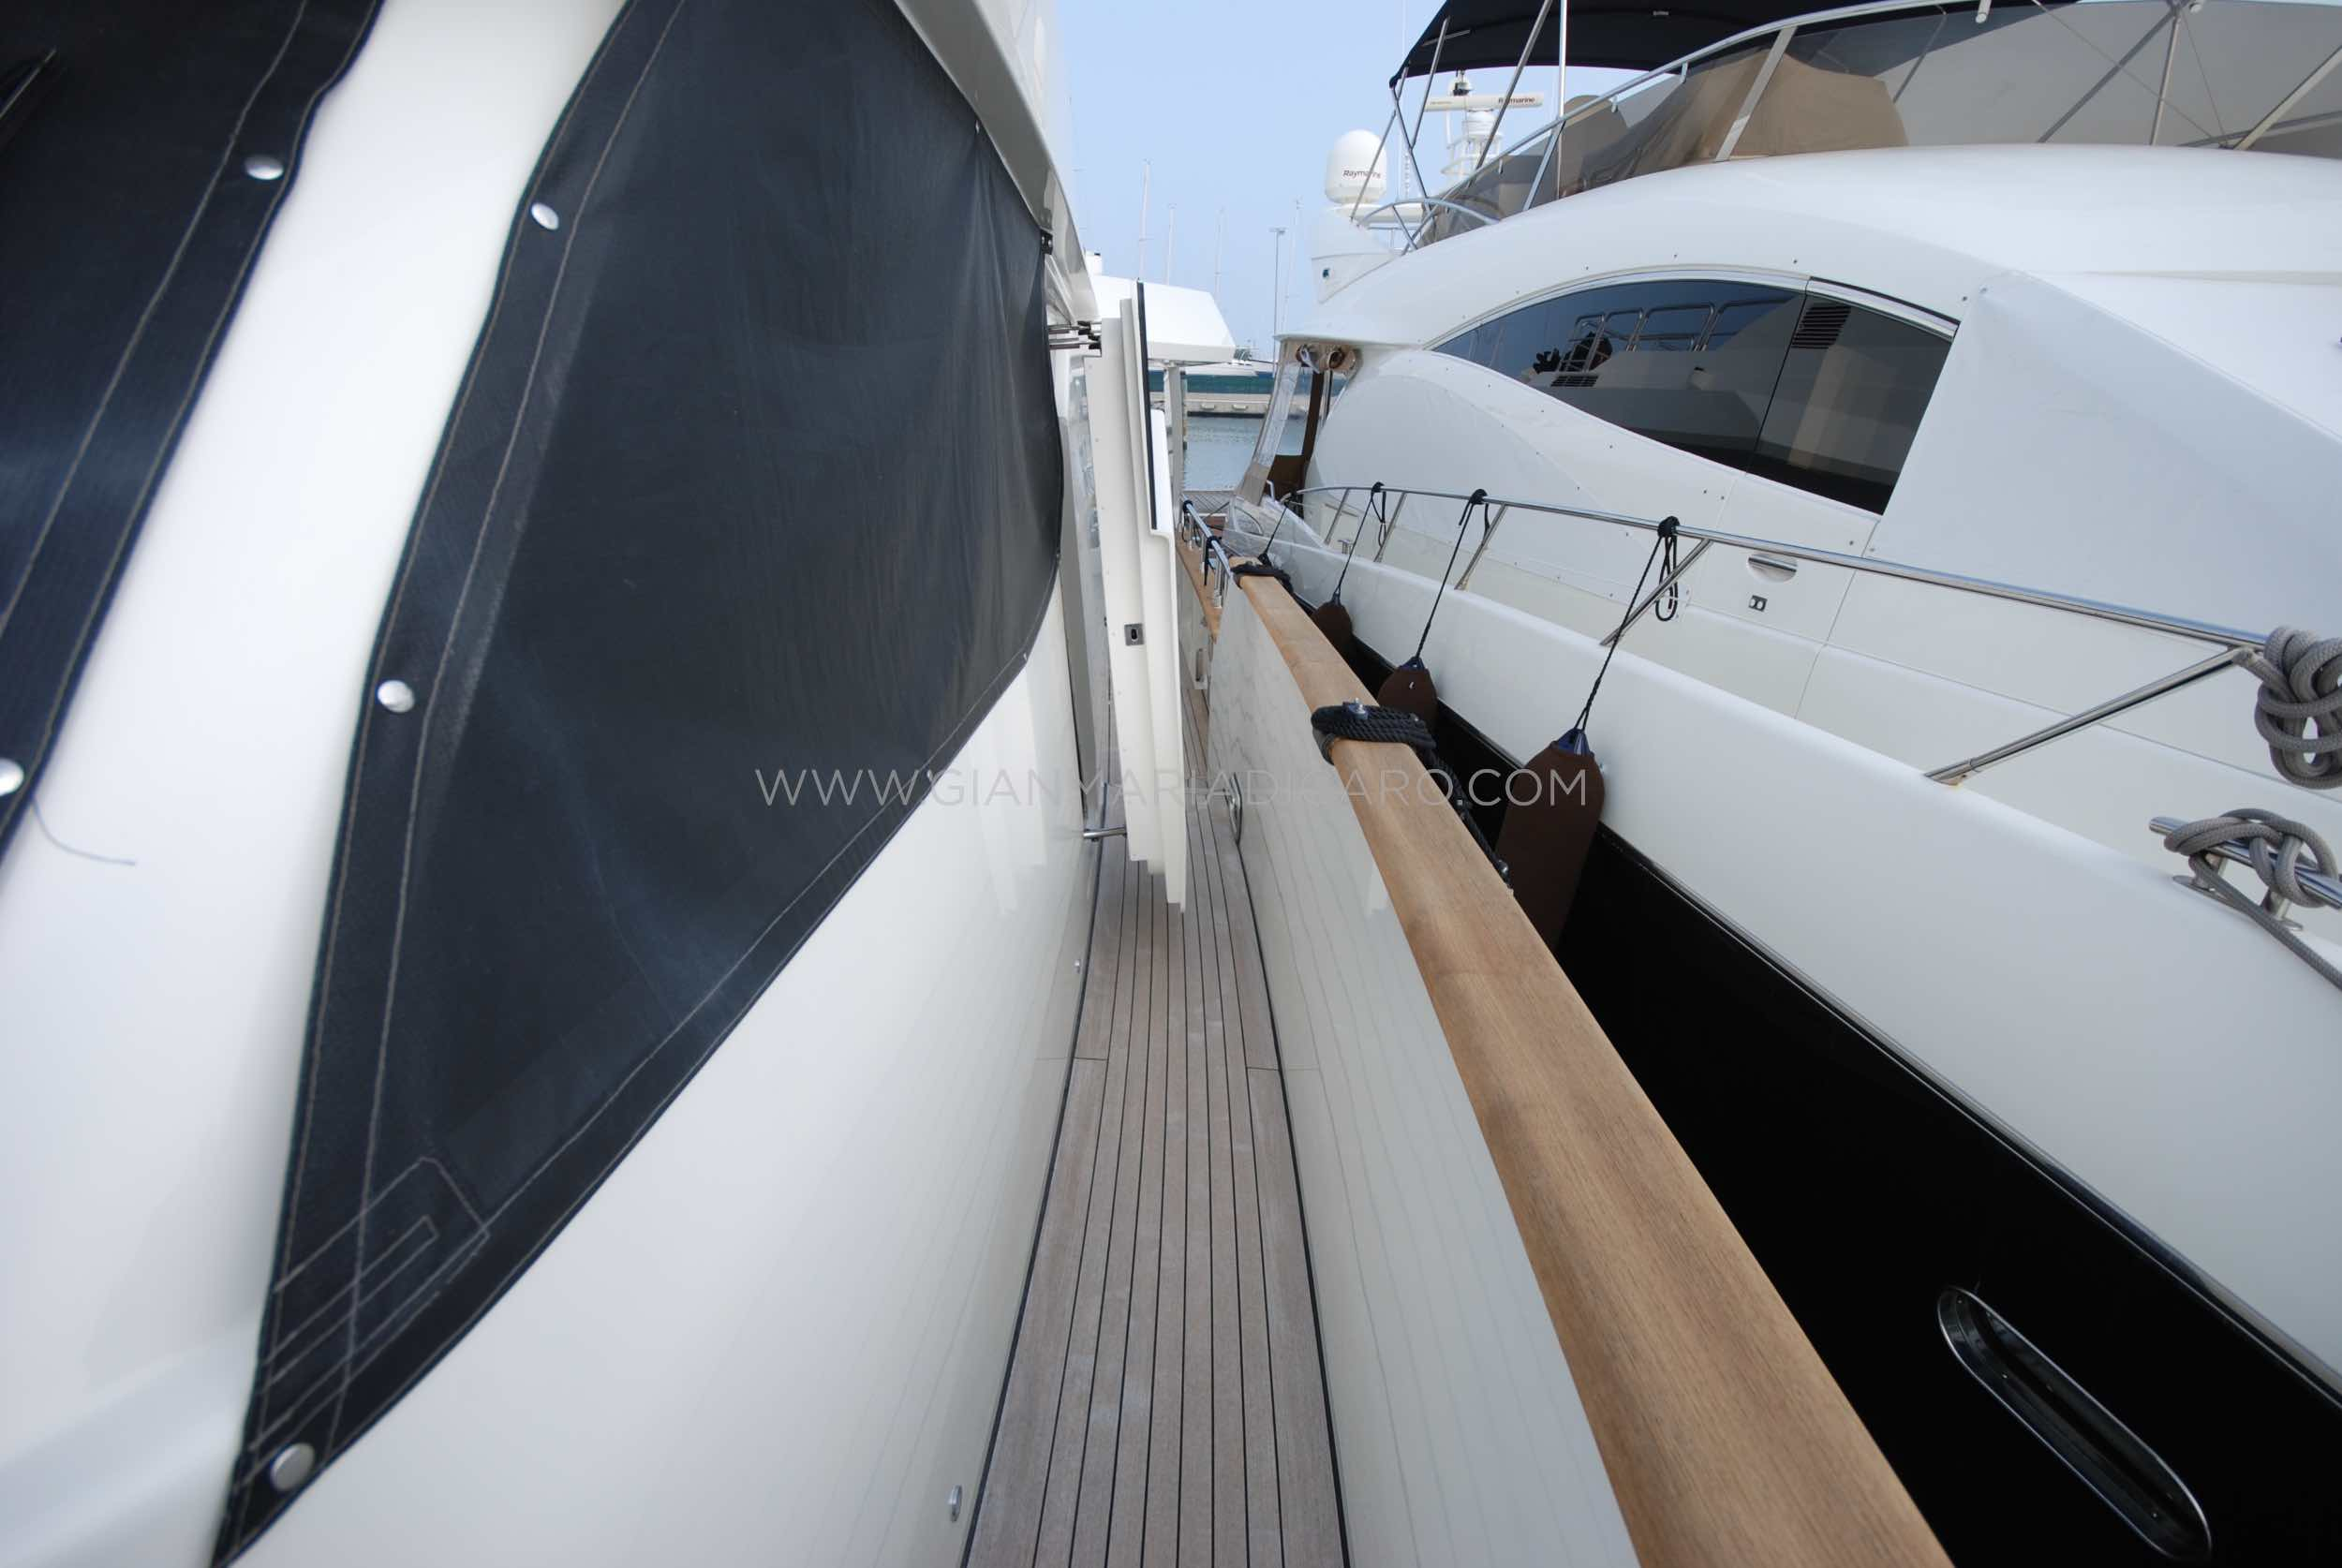 emys-yacht-22-unica-for-sale-37.jpg